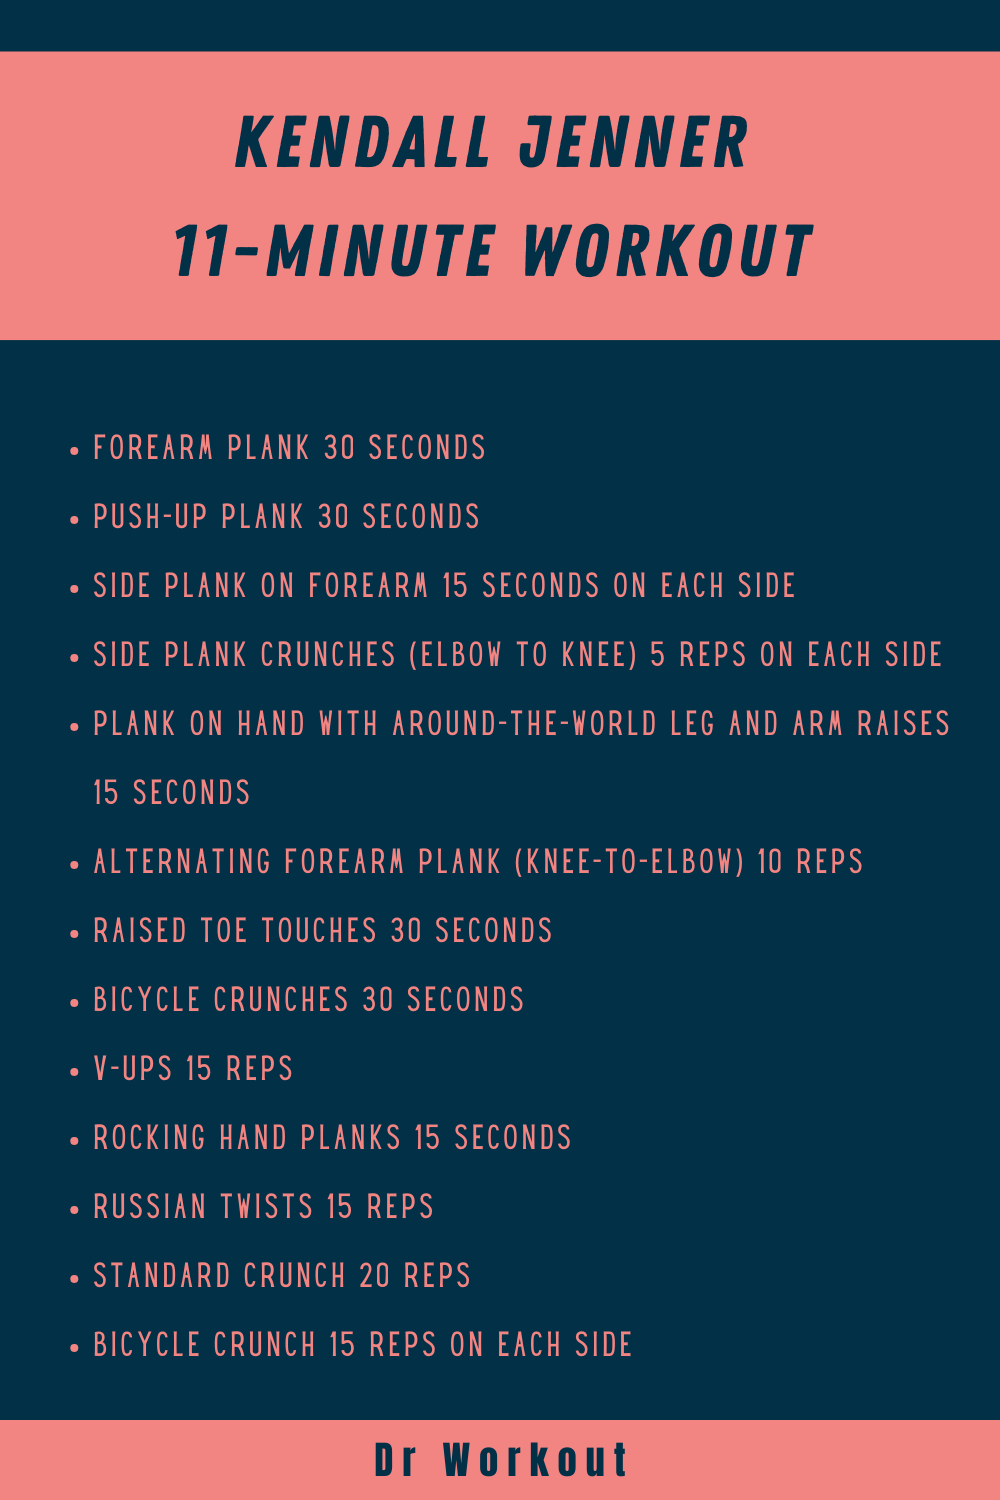 Kendall Jenner 11-Minute Workout